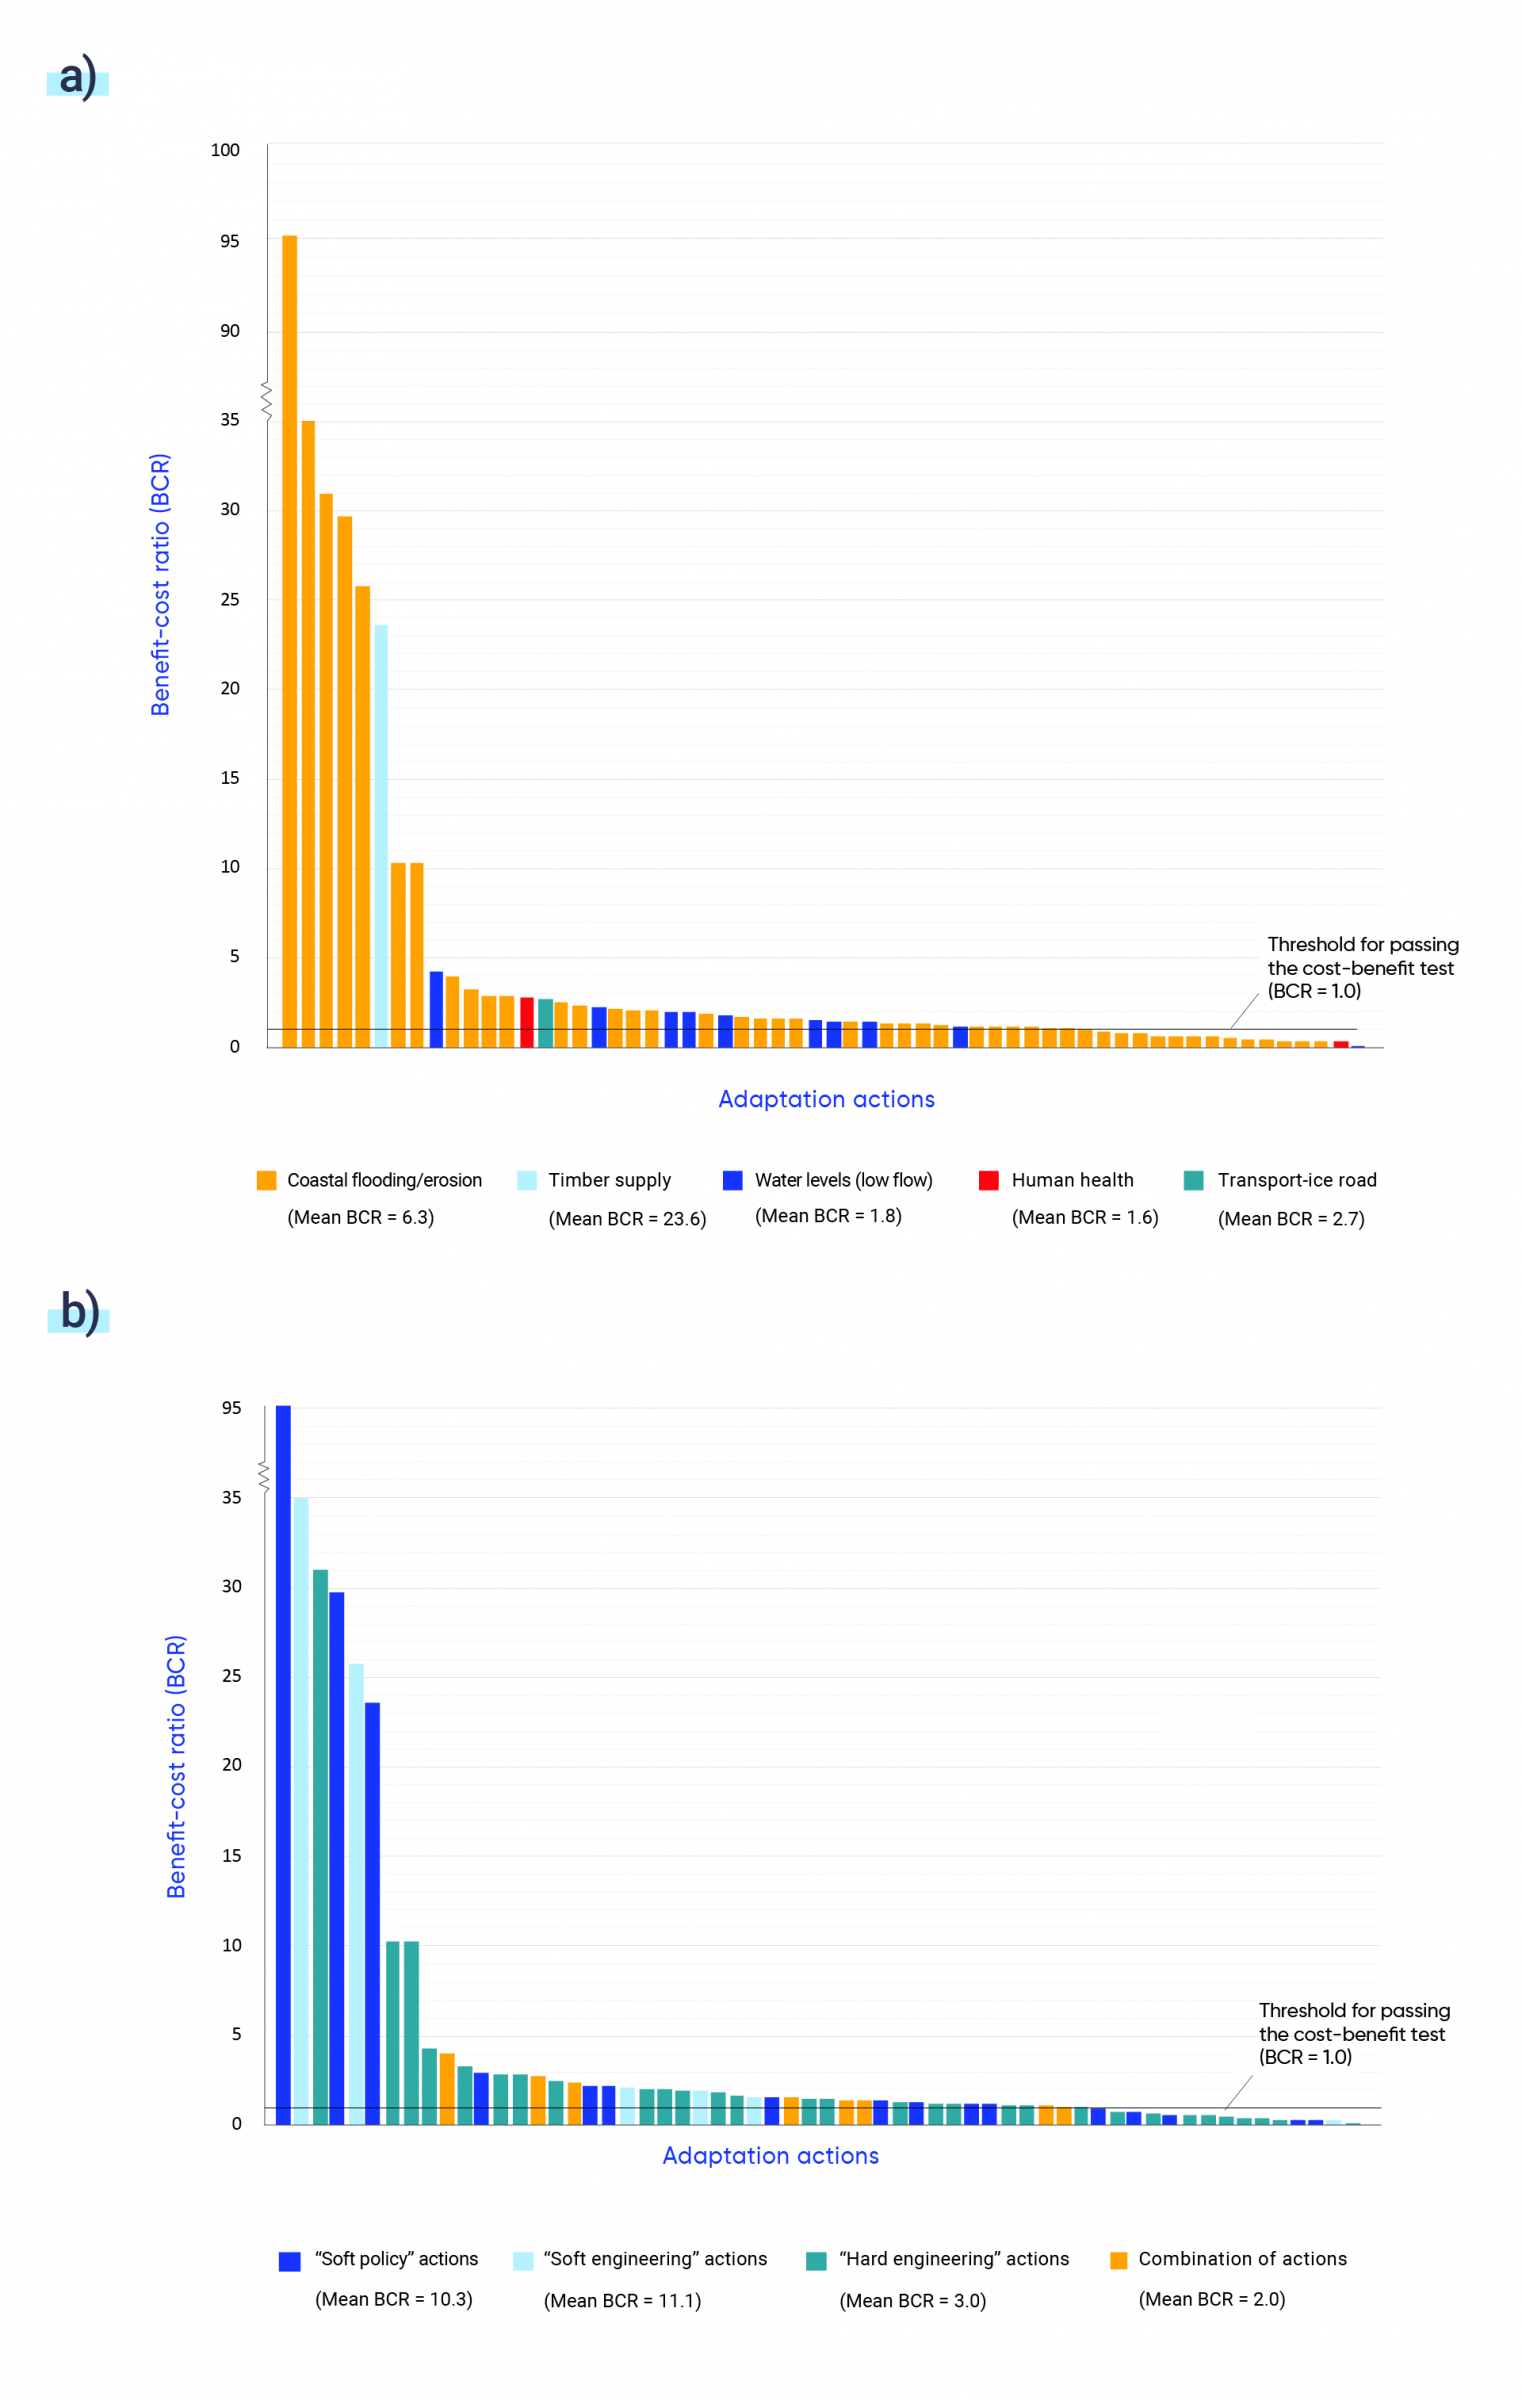 """Figure A is a bar graph that shows the benefit-cost ratios of different types of adaptation actions from the sample, differentiated by sector. The coastal flooding and erosion sector makes up most of the projects with a very high benefit-cost ratio (BCR) and has a mean estimated BCR of 6.3. Timber supply adaptation has a mean BCR of 23.6. Water levels has a mean BCR of 1.8. Human health has a mean BCR of 1.6, and ice roads have a mean BCR of 2.7. Figure B is a bar graph that shows the benefit-cost ratios of these actions, differentiated by category of adaptation action: """"soft policy"""" actions (for example, planned retreat, enhanced pest control, and flexible scheduling); """"soft engineering"""" actions (for example, beach nourishment and green roofs); """"hard engineering"""" actions (for example, dykes, weirs, and sea walls); and """"combination"""" actions. Soft policy, soft engineering, and hard engineering are among the actions with the highest BCR. Soft policy actions have an average BCR of 10.3. Soft engineering actions have an average BCR of 11.1. Hard engineering actions have an average BCR of 3.0, and combination actions have an average BCR of 2.0."""